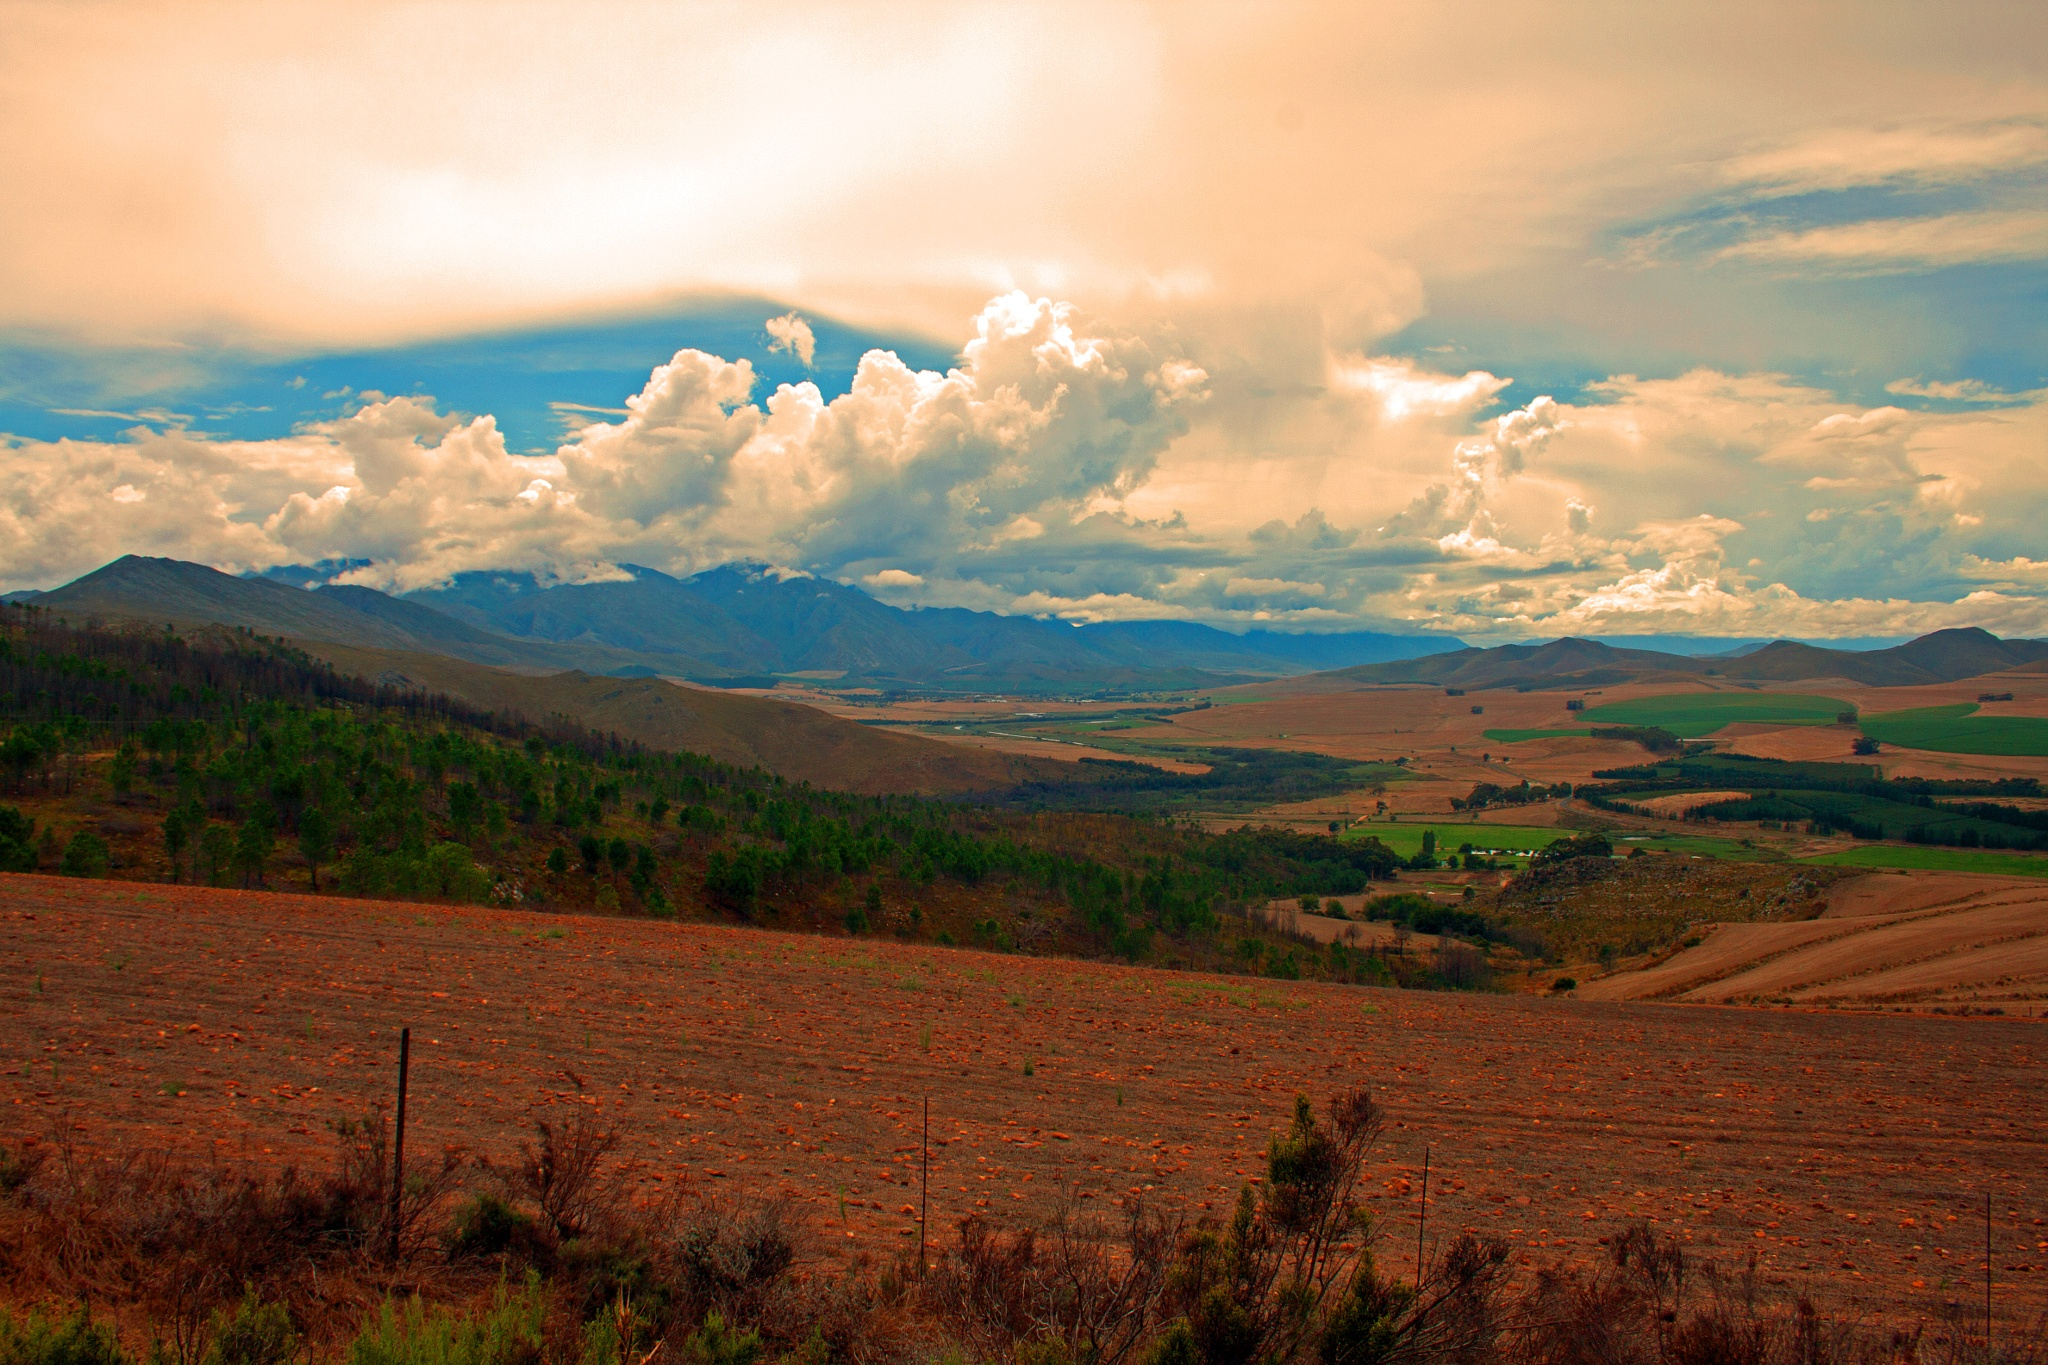 Cloudy countryside by Nauta Piscatorque